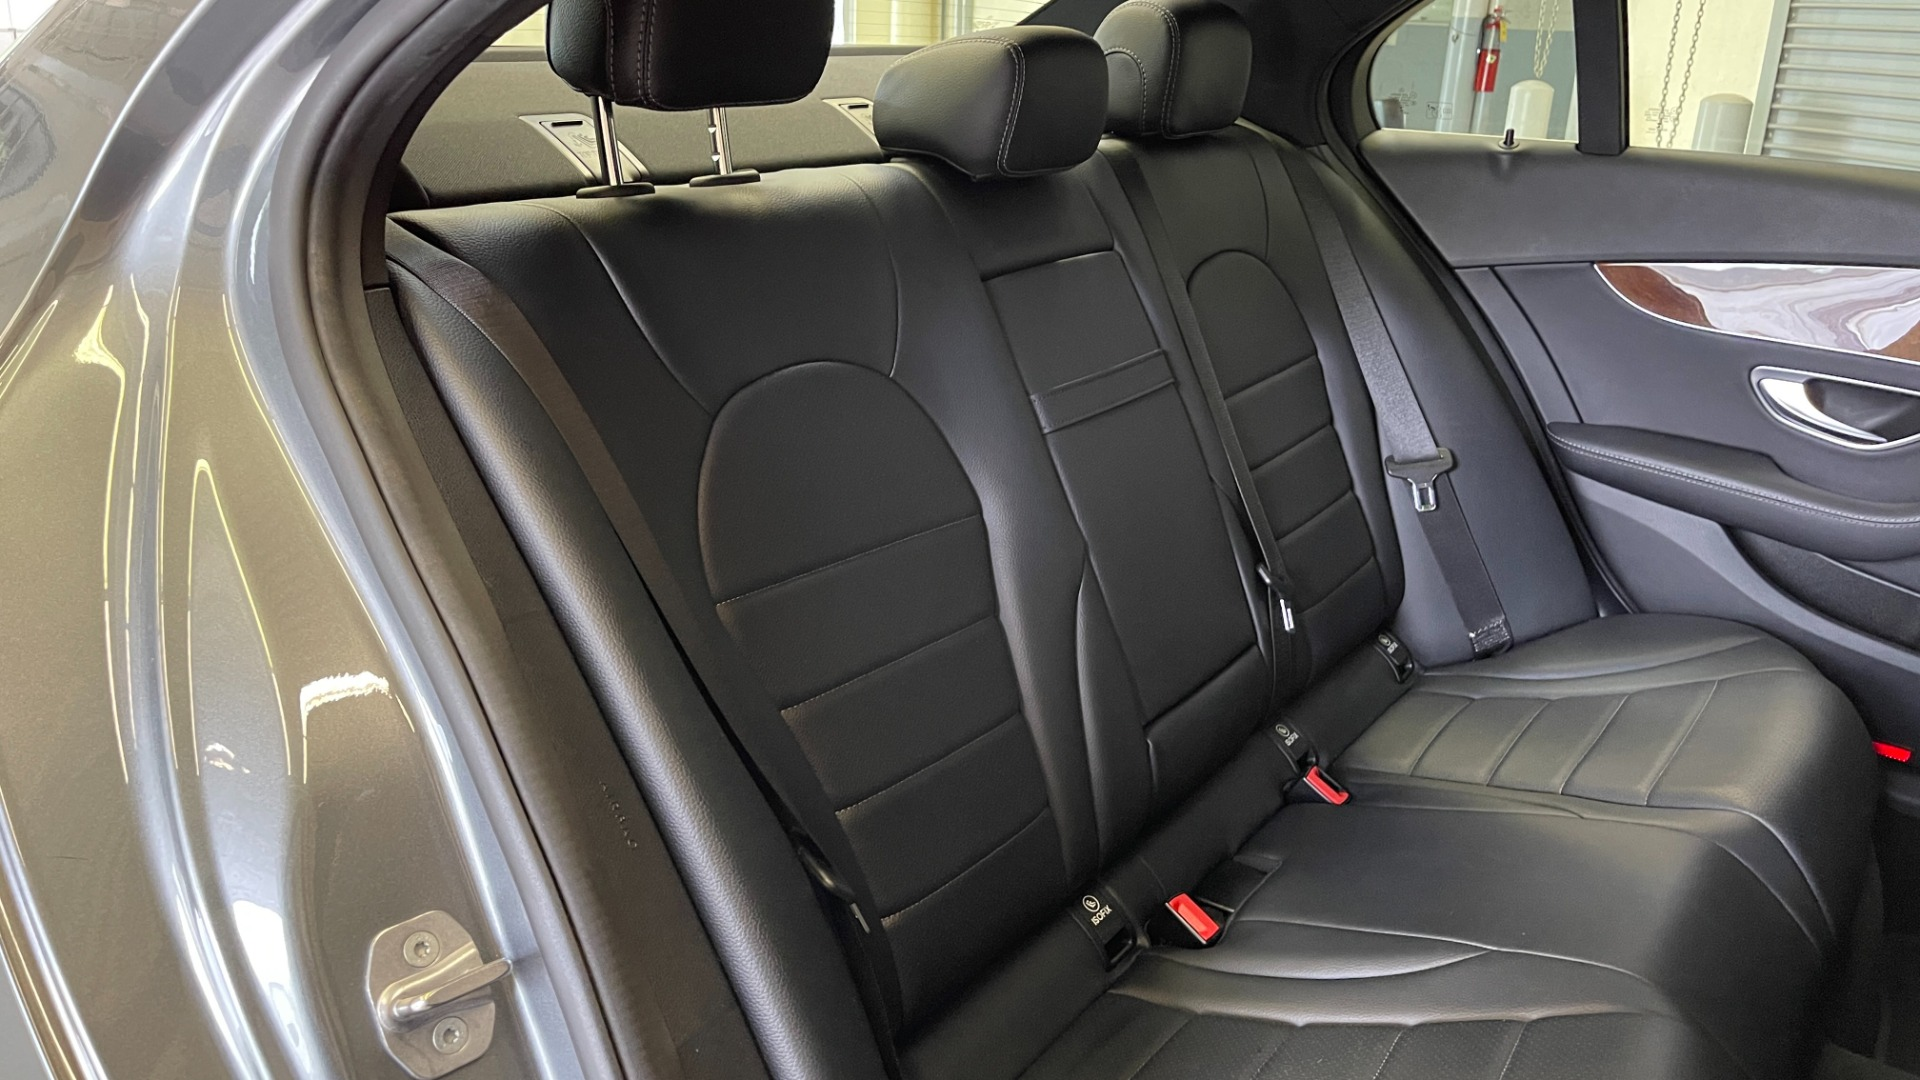 Used 2018 Mercedes-Benz C-CLASS C 300 PREMIUM / SUNROOF / APPLE CARPLAY / HTD STS / REARVIEW for sale $31,795 at Formula Imports in Charlotte NC 28227 47